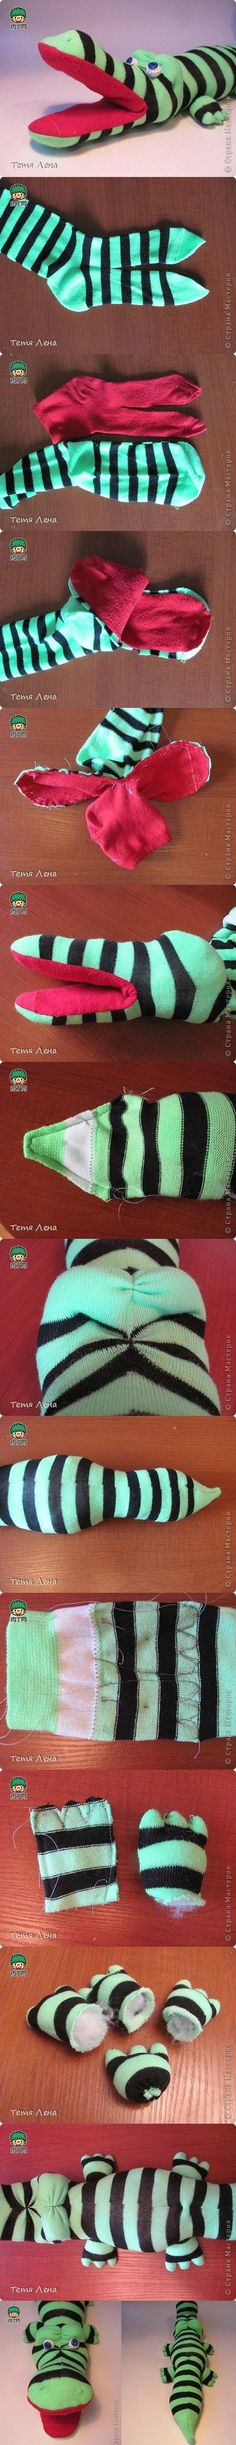 DIY Sock Crocodile Stuffed Animal #diy children #playtime kids #artwork Visit www.circu.net                                                                                                                                                      Más